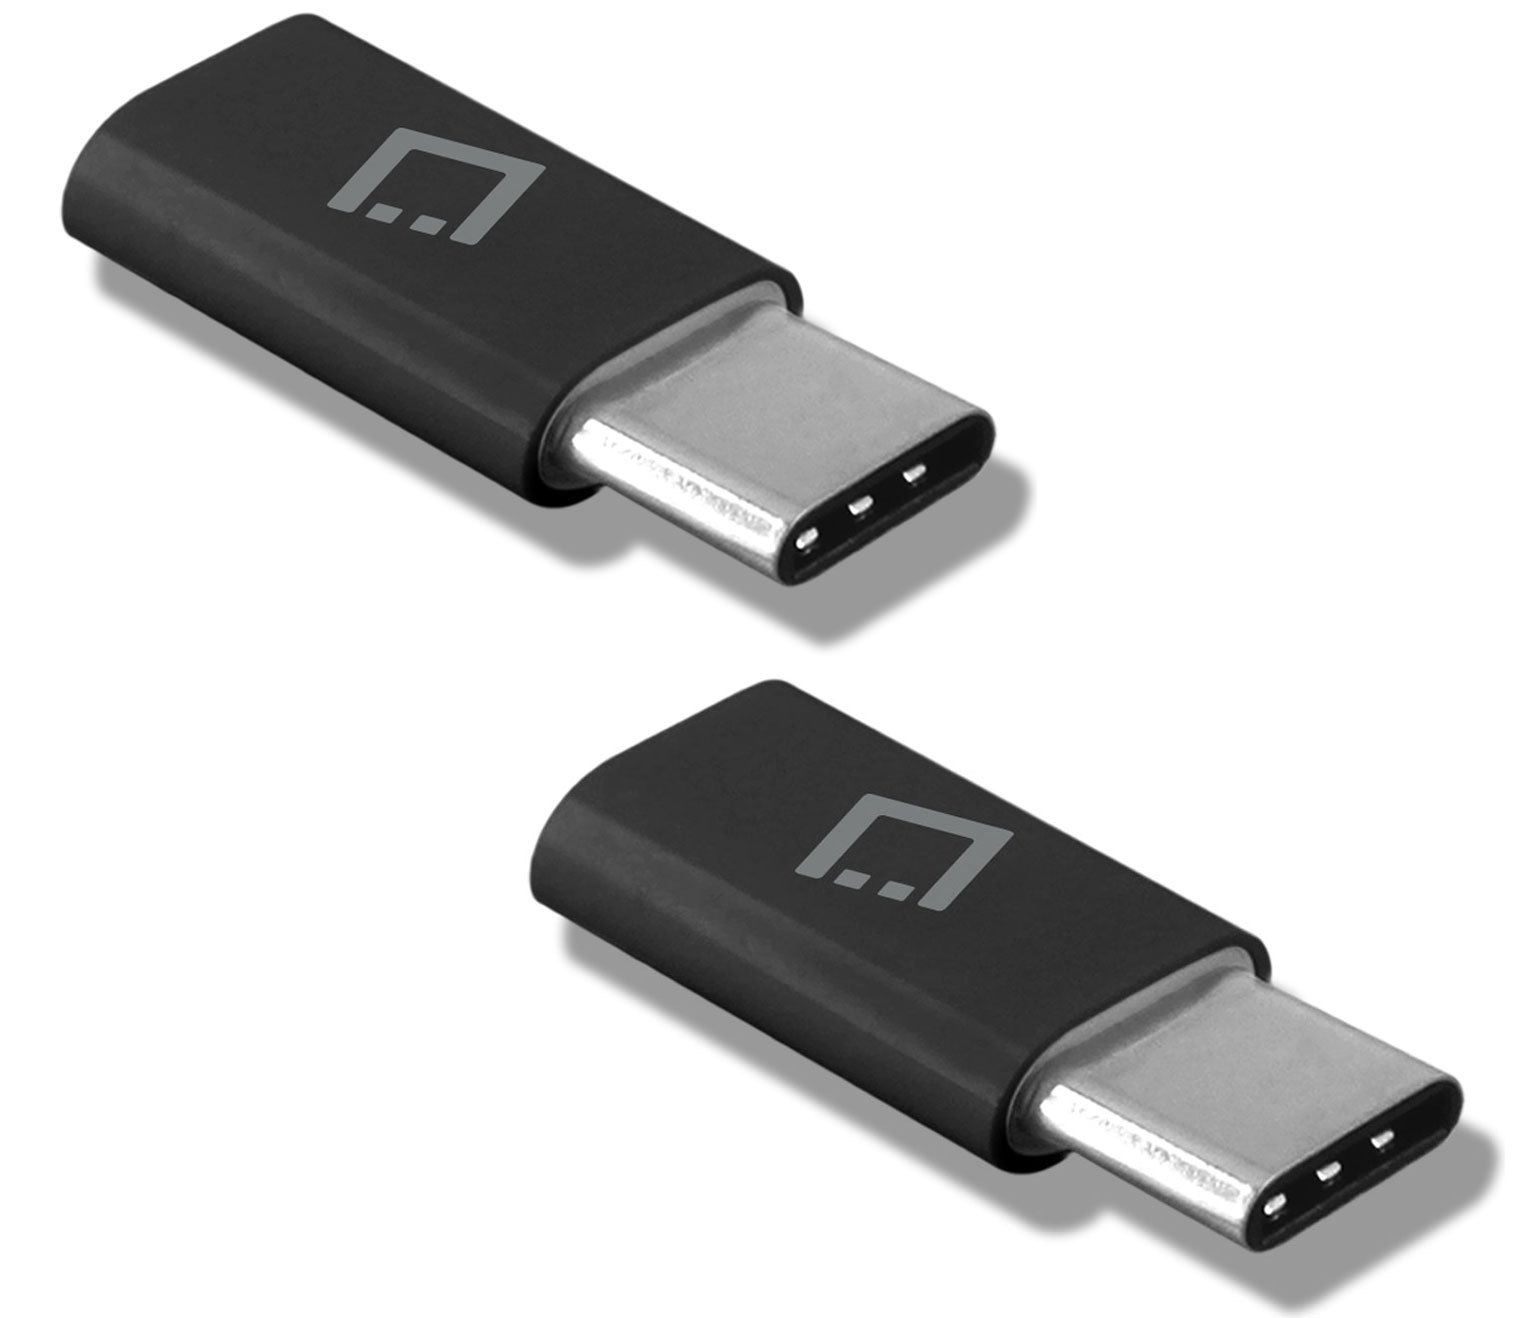 ZTE Axon M MicroUSB to USB Type-C Adapter Black Pack Of 2